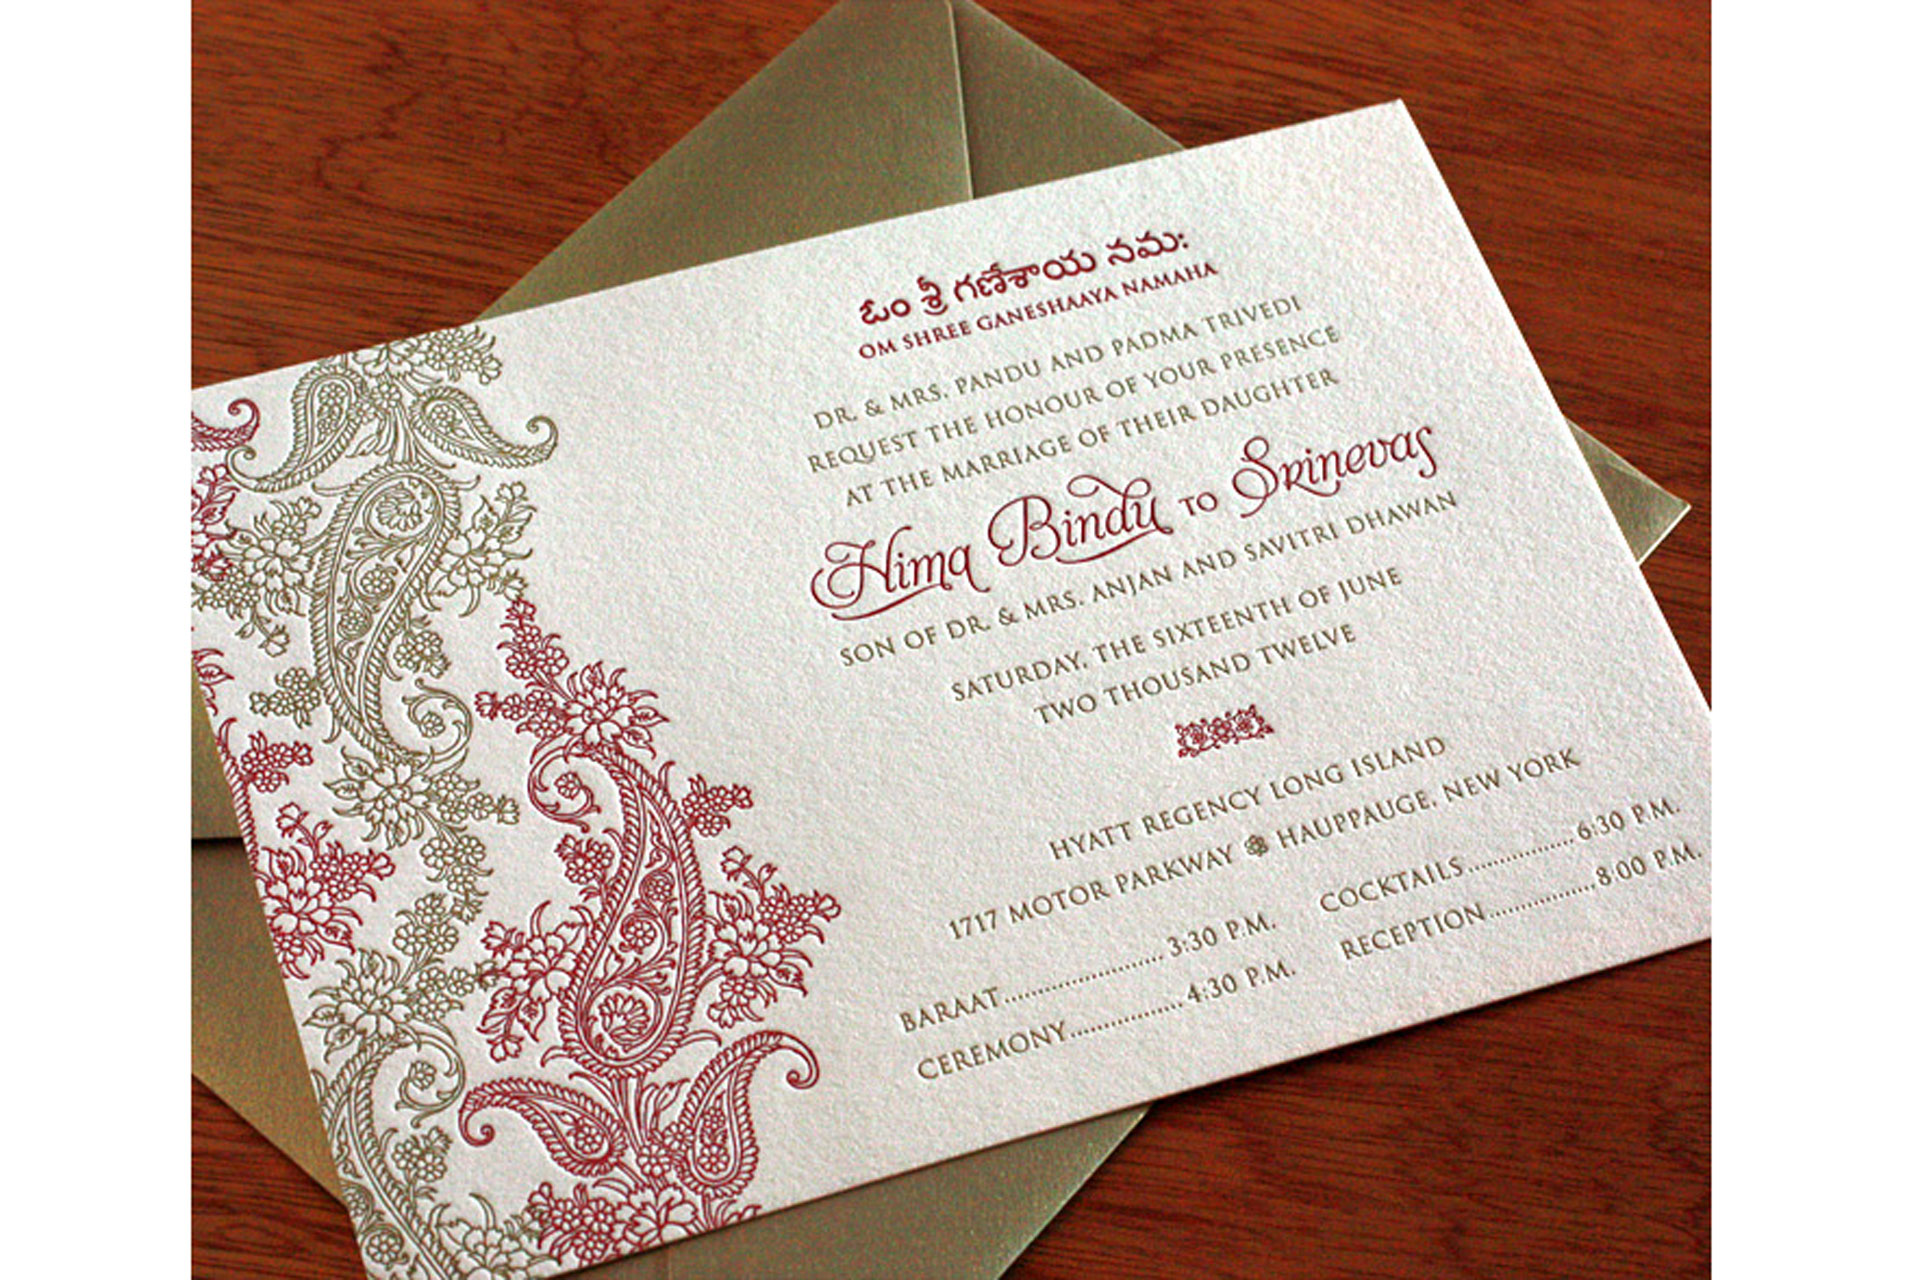 Getting The Right Wording For Your Introduction And Wedding